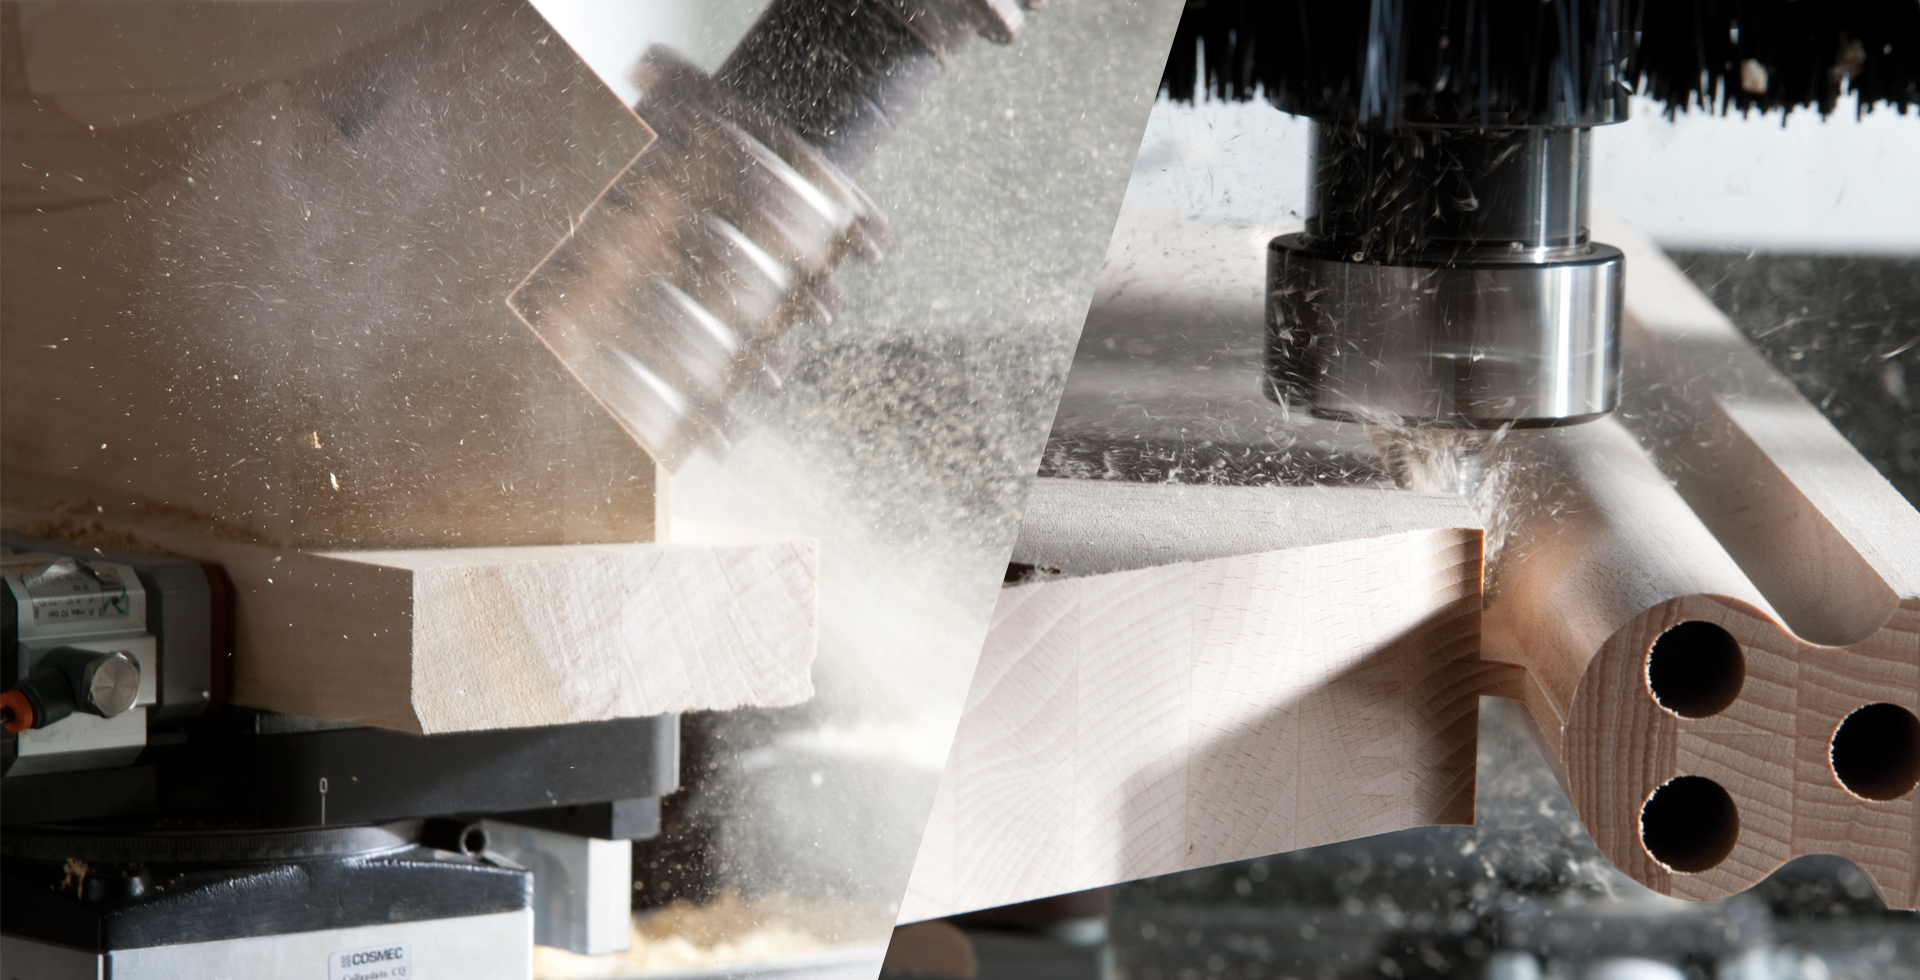 Machining of Solid Wood